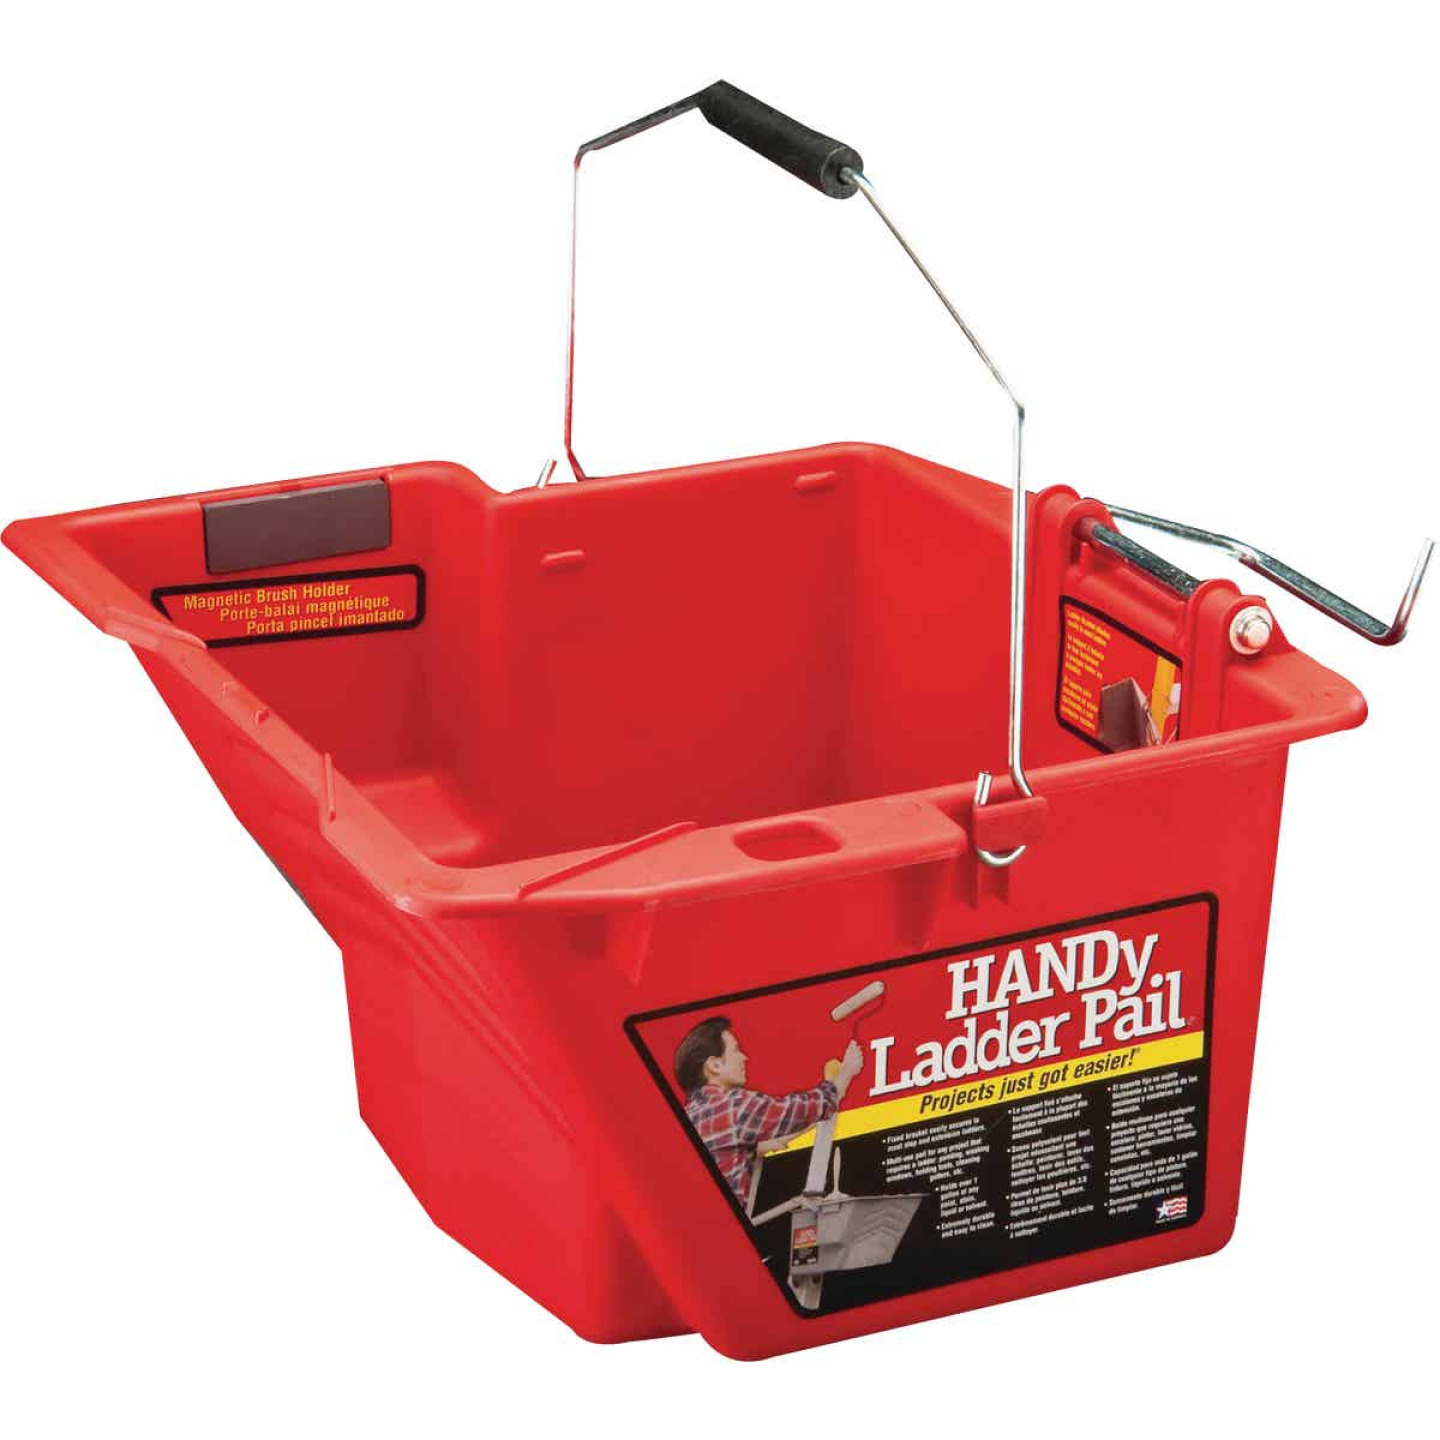 HANDy Ladder Pail 1.5 Gal. Red Painter's Bucket with Fixed Ladder Bracket And Magnetic Brush Holder Image 1